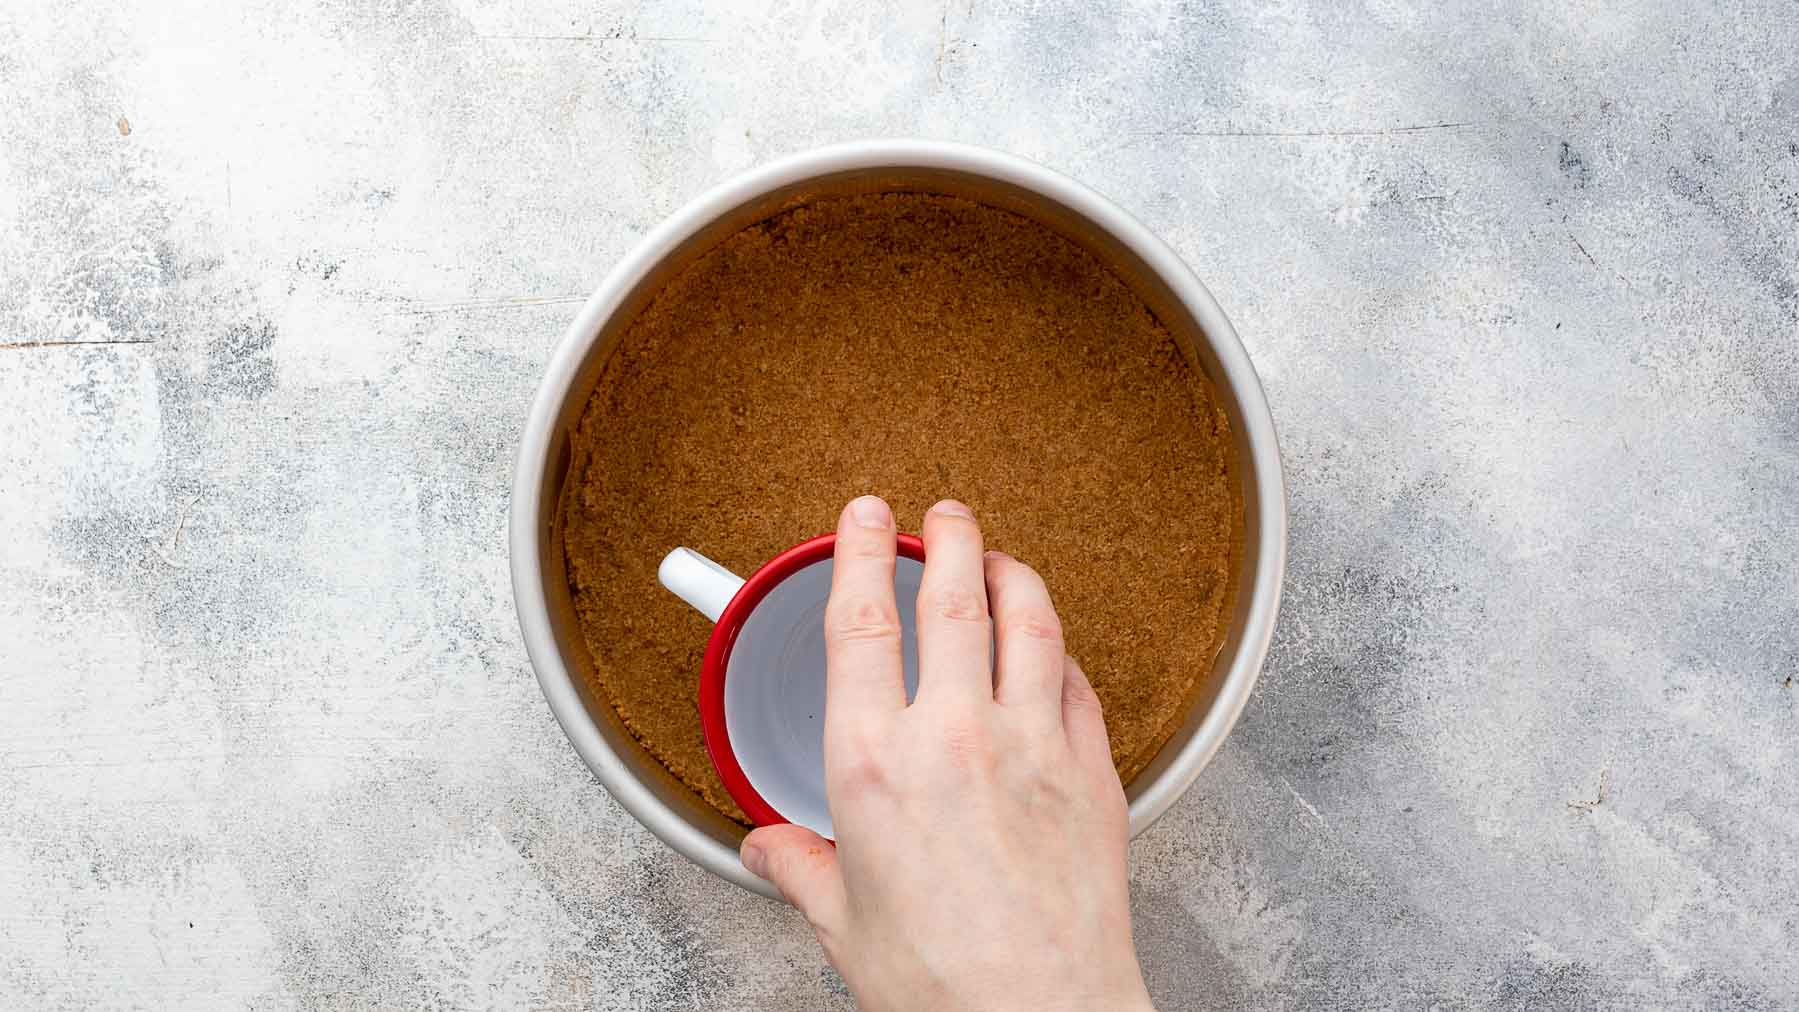 pressing graham cracker crust down in pan